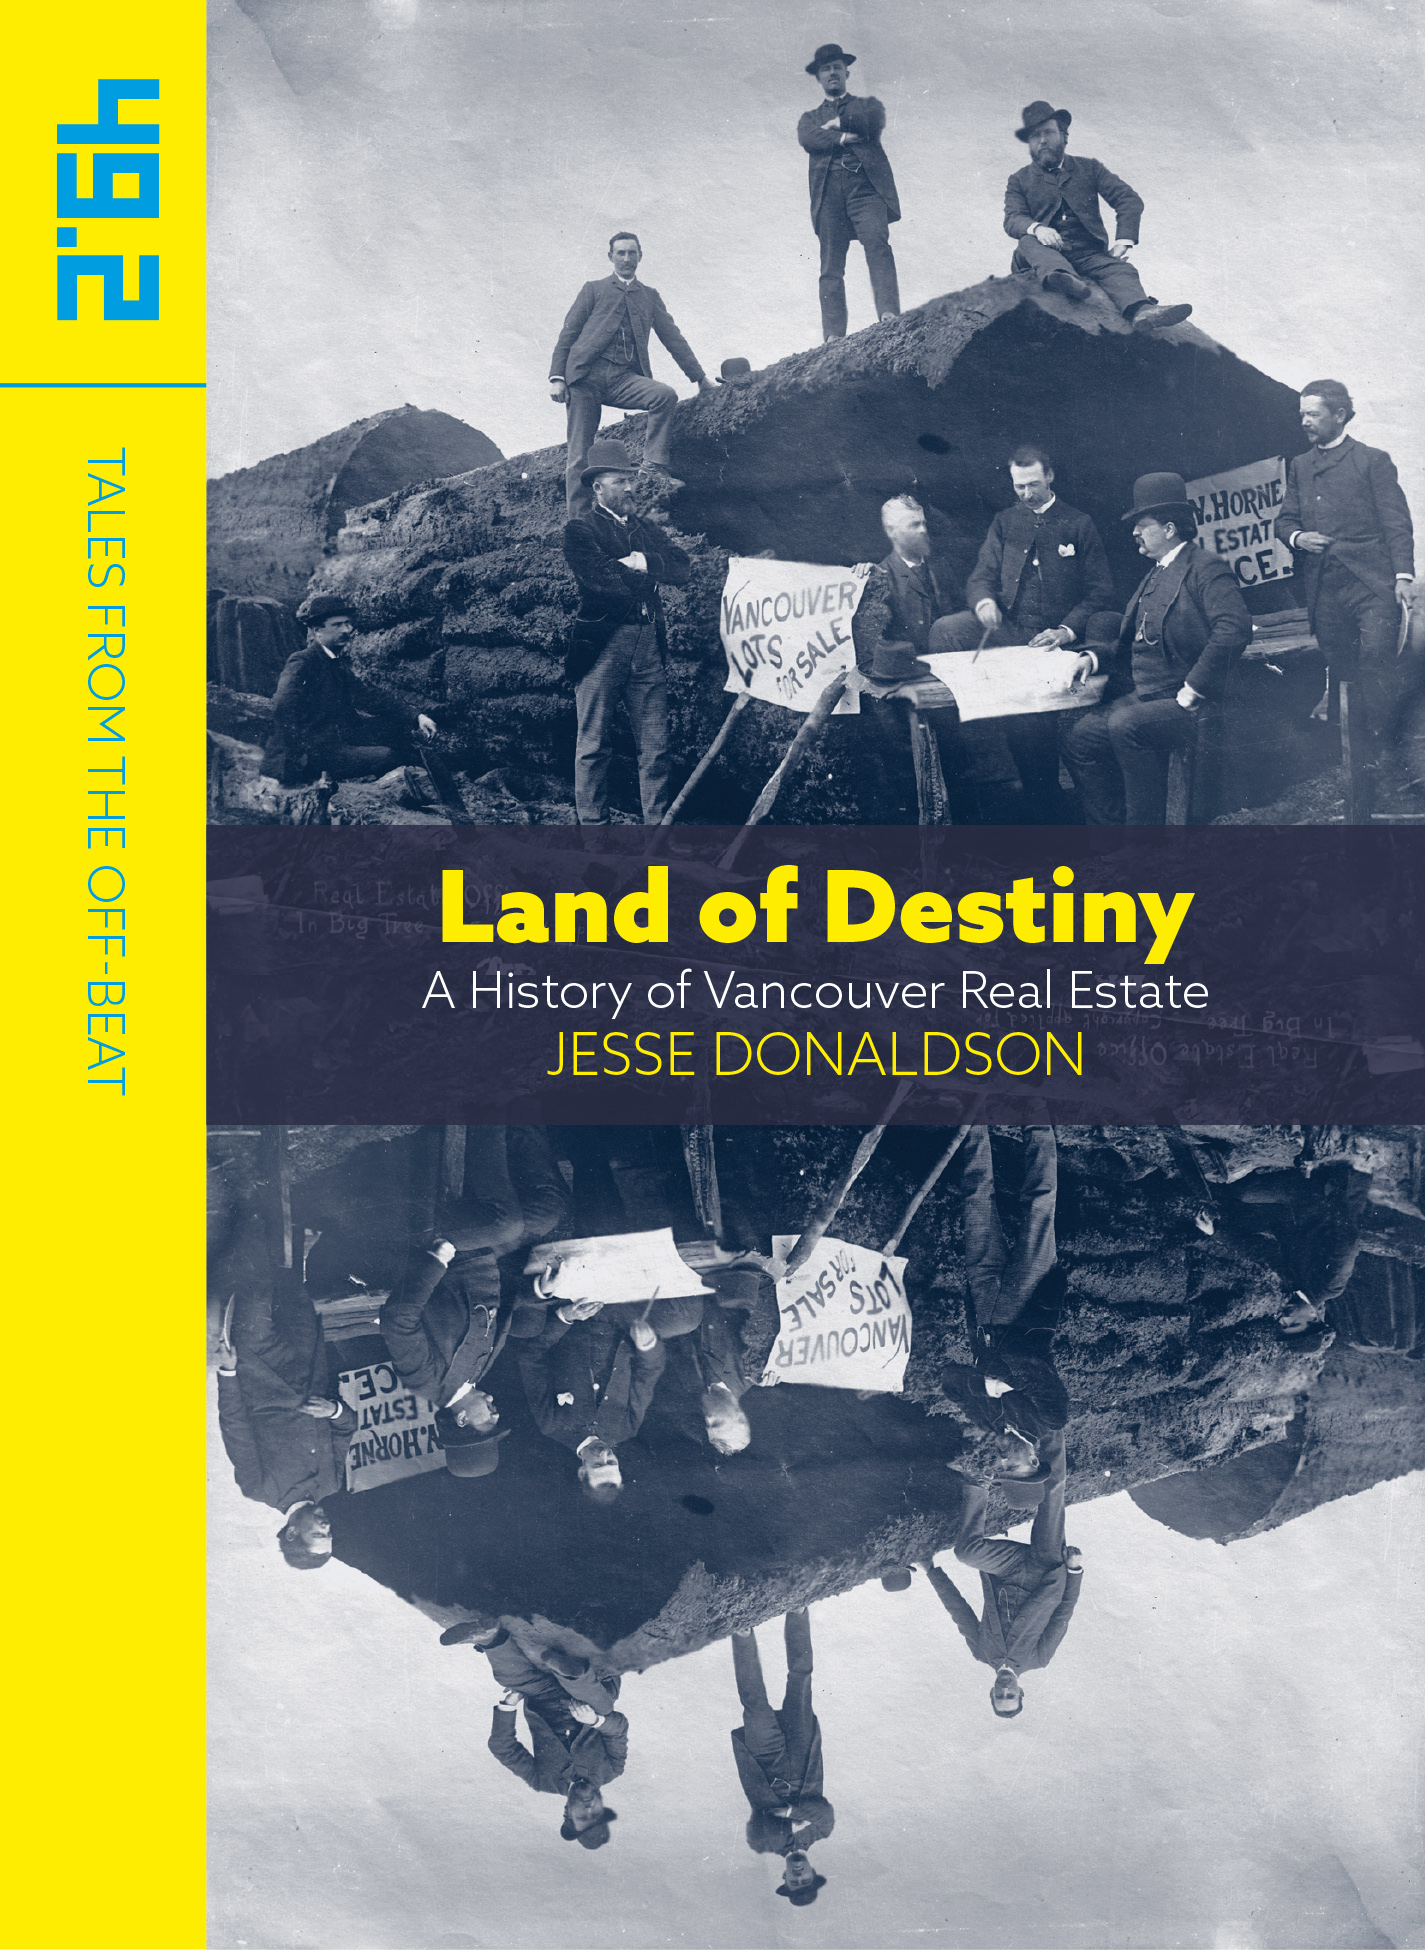 Land of Destiny: A History of Vancouver Real Estate